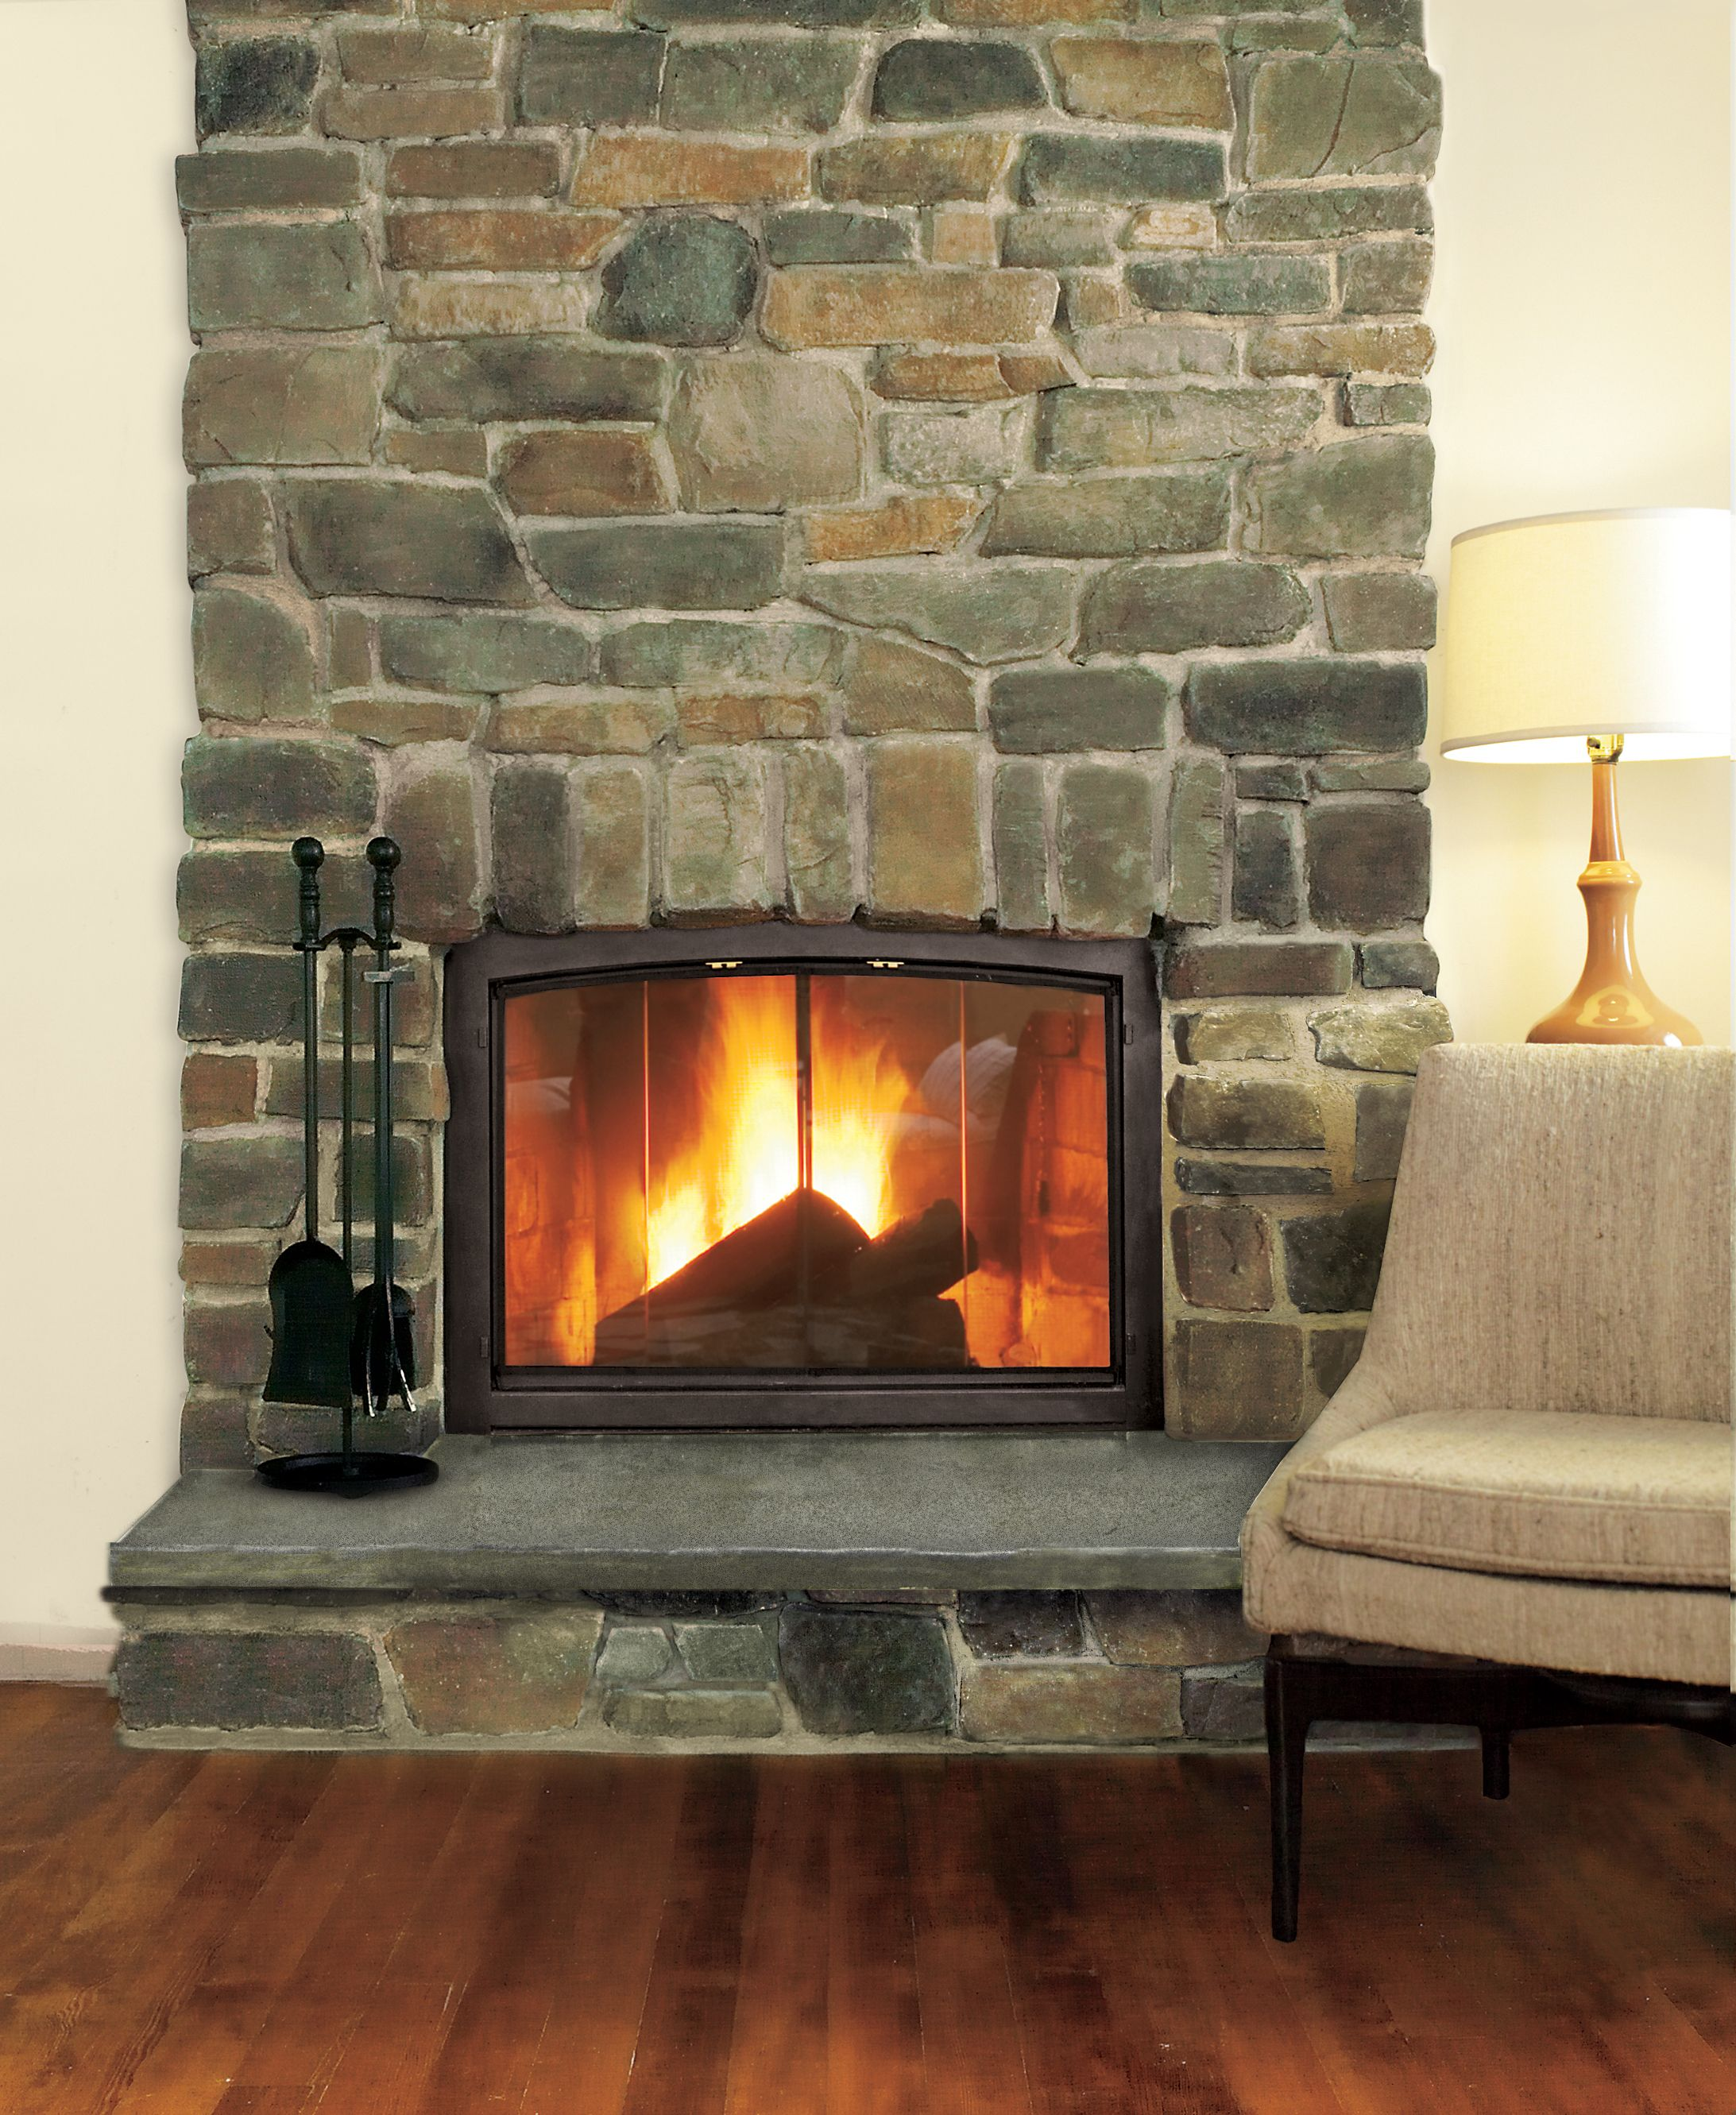 Lightweight Cast Stones Add Rustic Charm To Any Hearth For A Fraction Of The Cost Real Thing